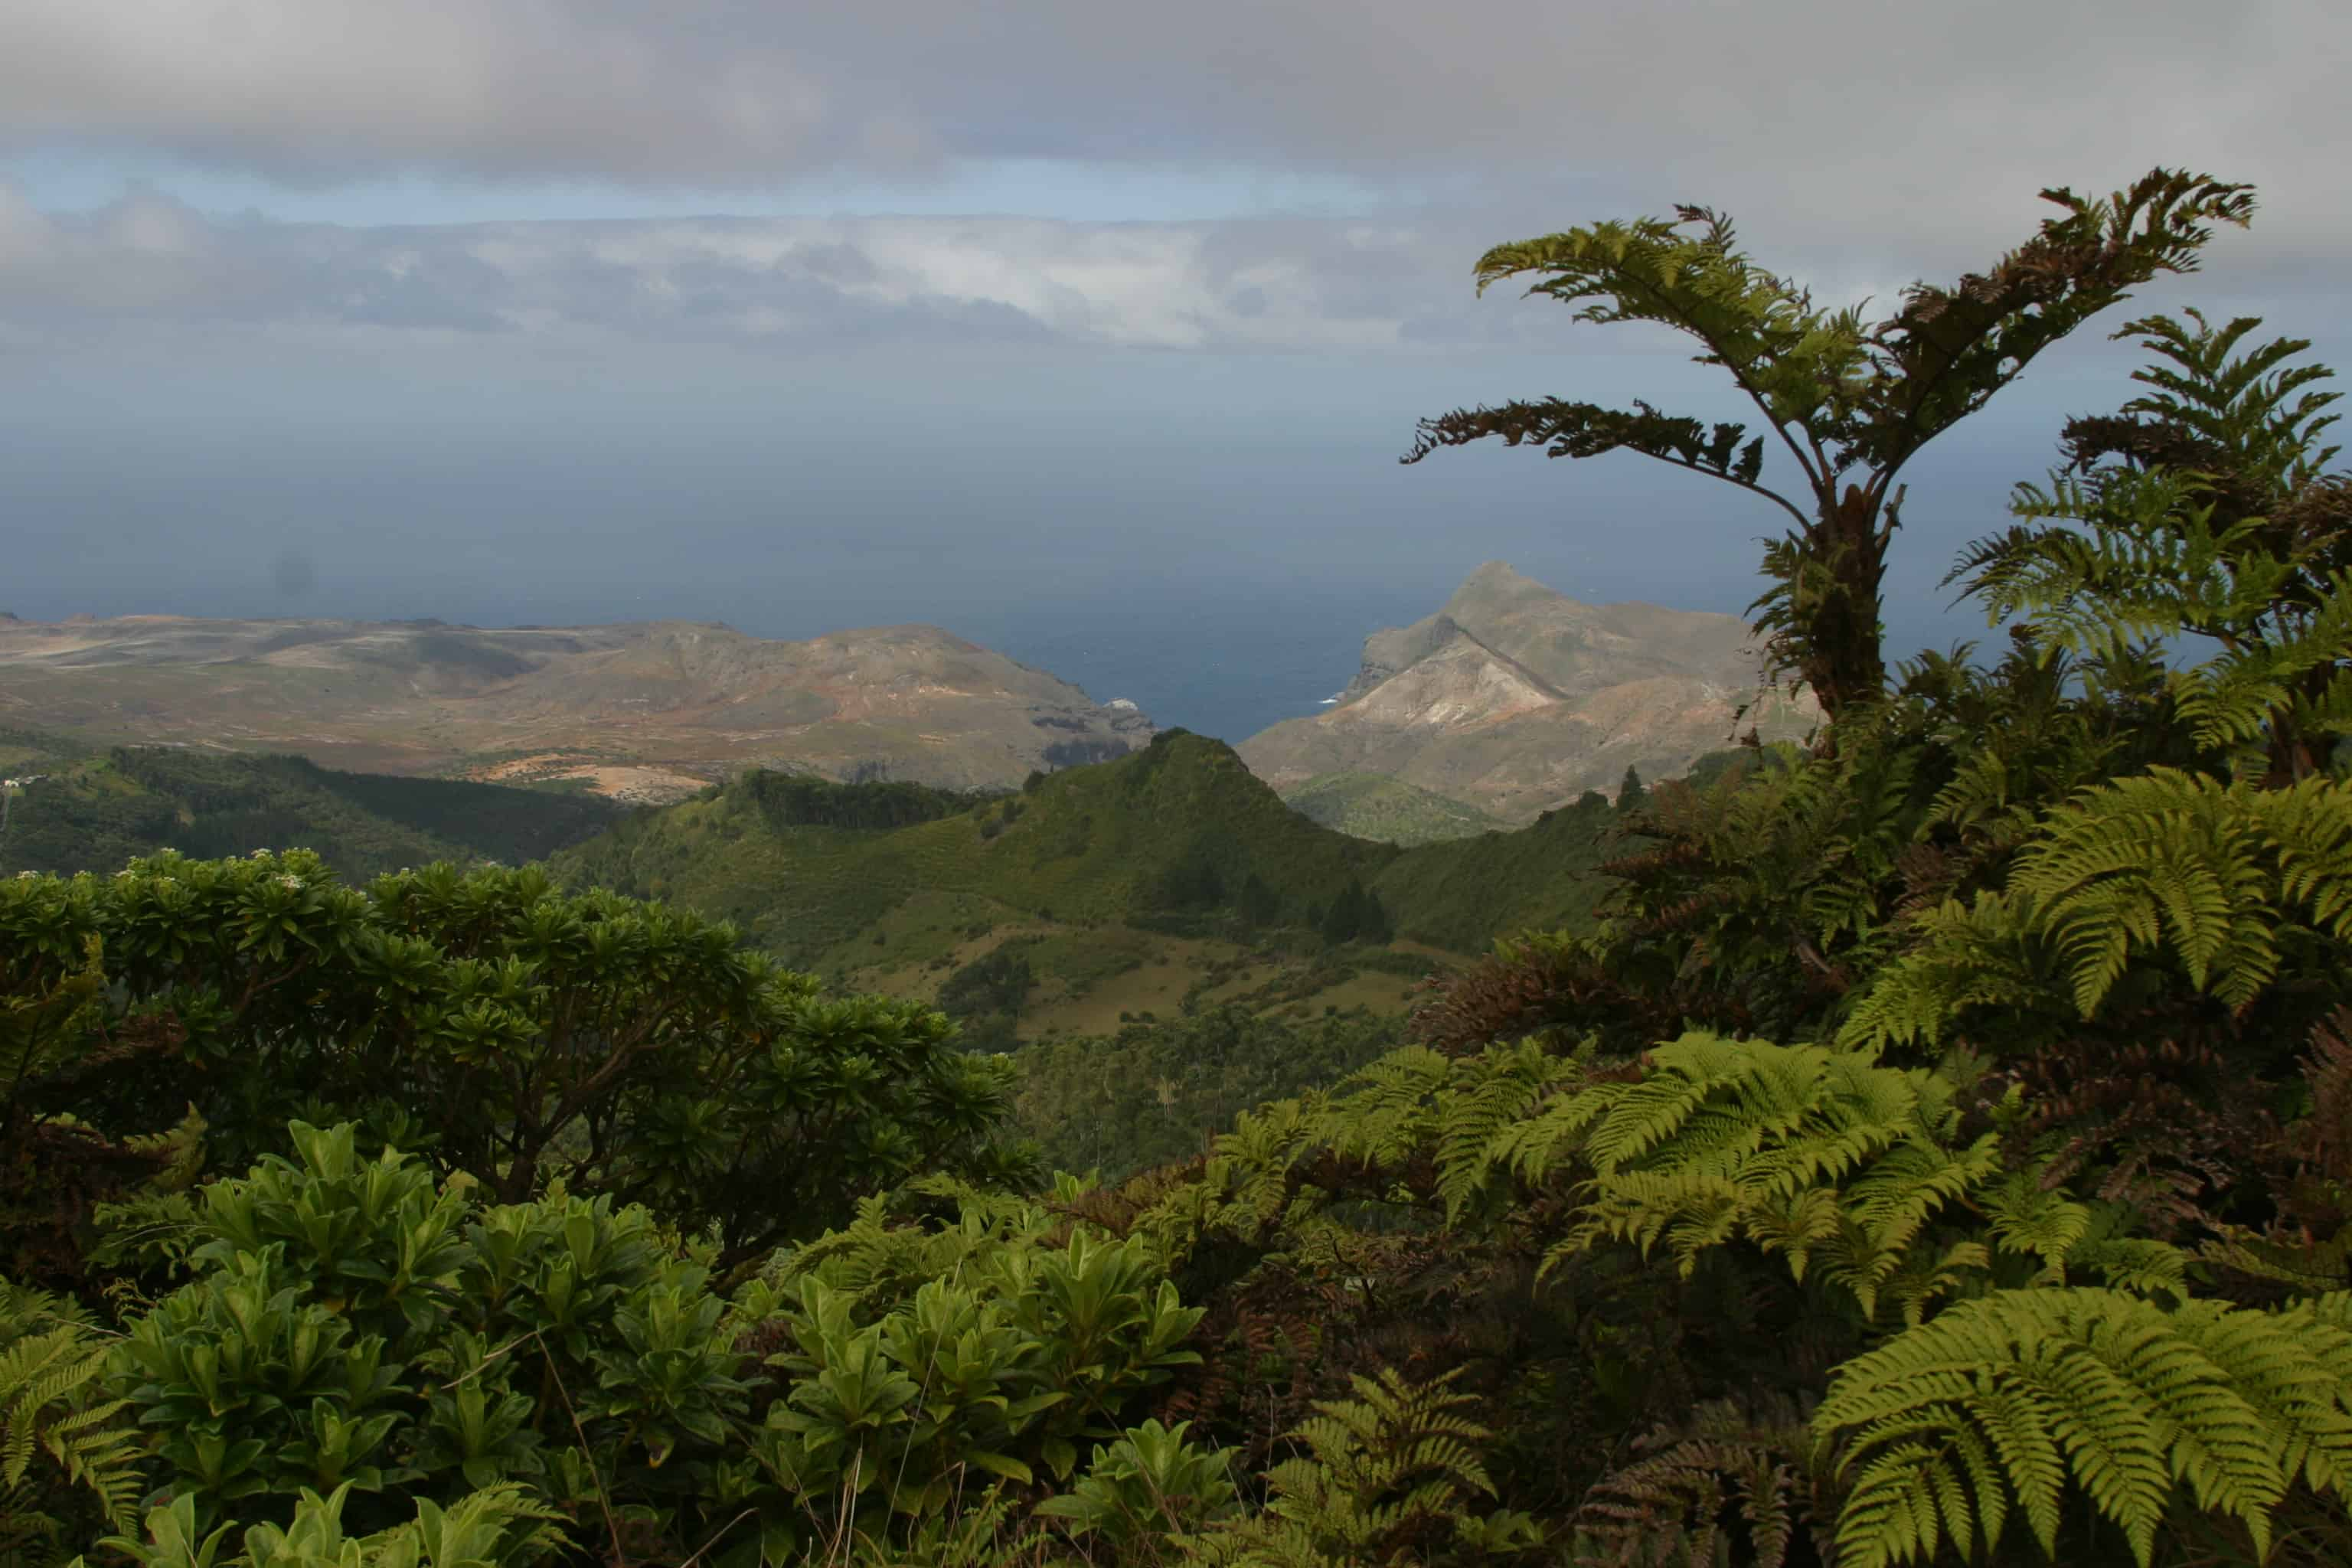 St Helena, viewed from cloud forest on the mountain, eastward to the desert. Copyright: Dr Mike Pienkowski